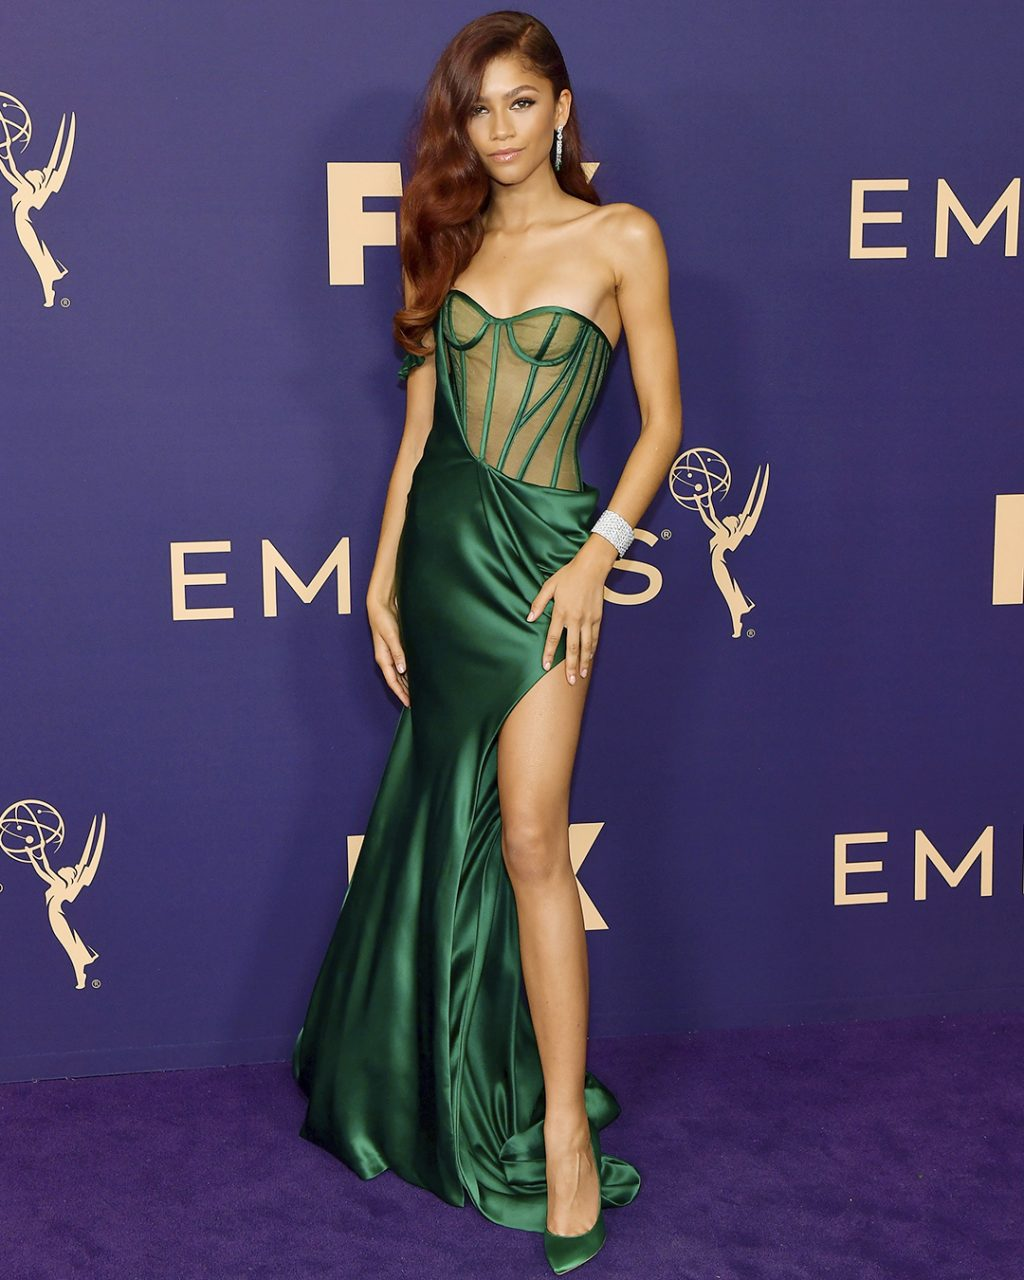 The Emmys Red Carpet Was Disappointing This Year – Except for These Looks